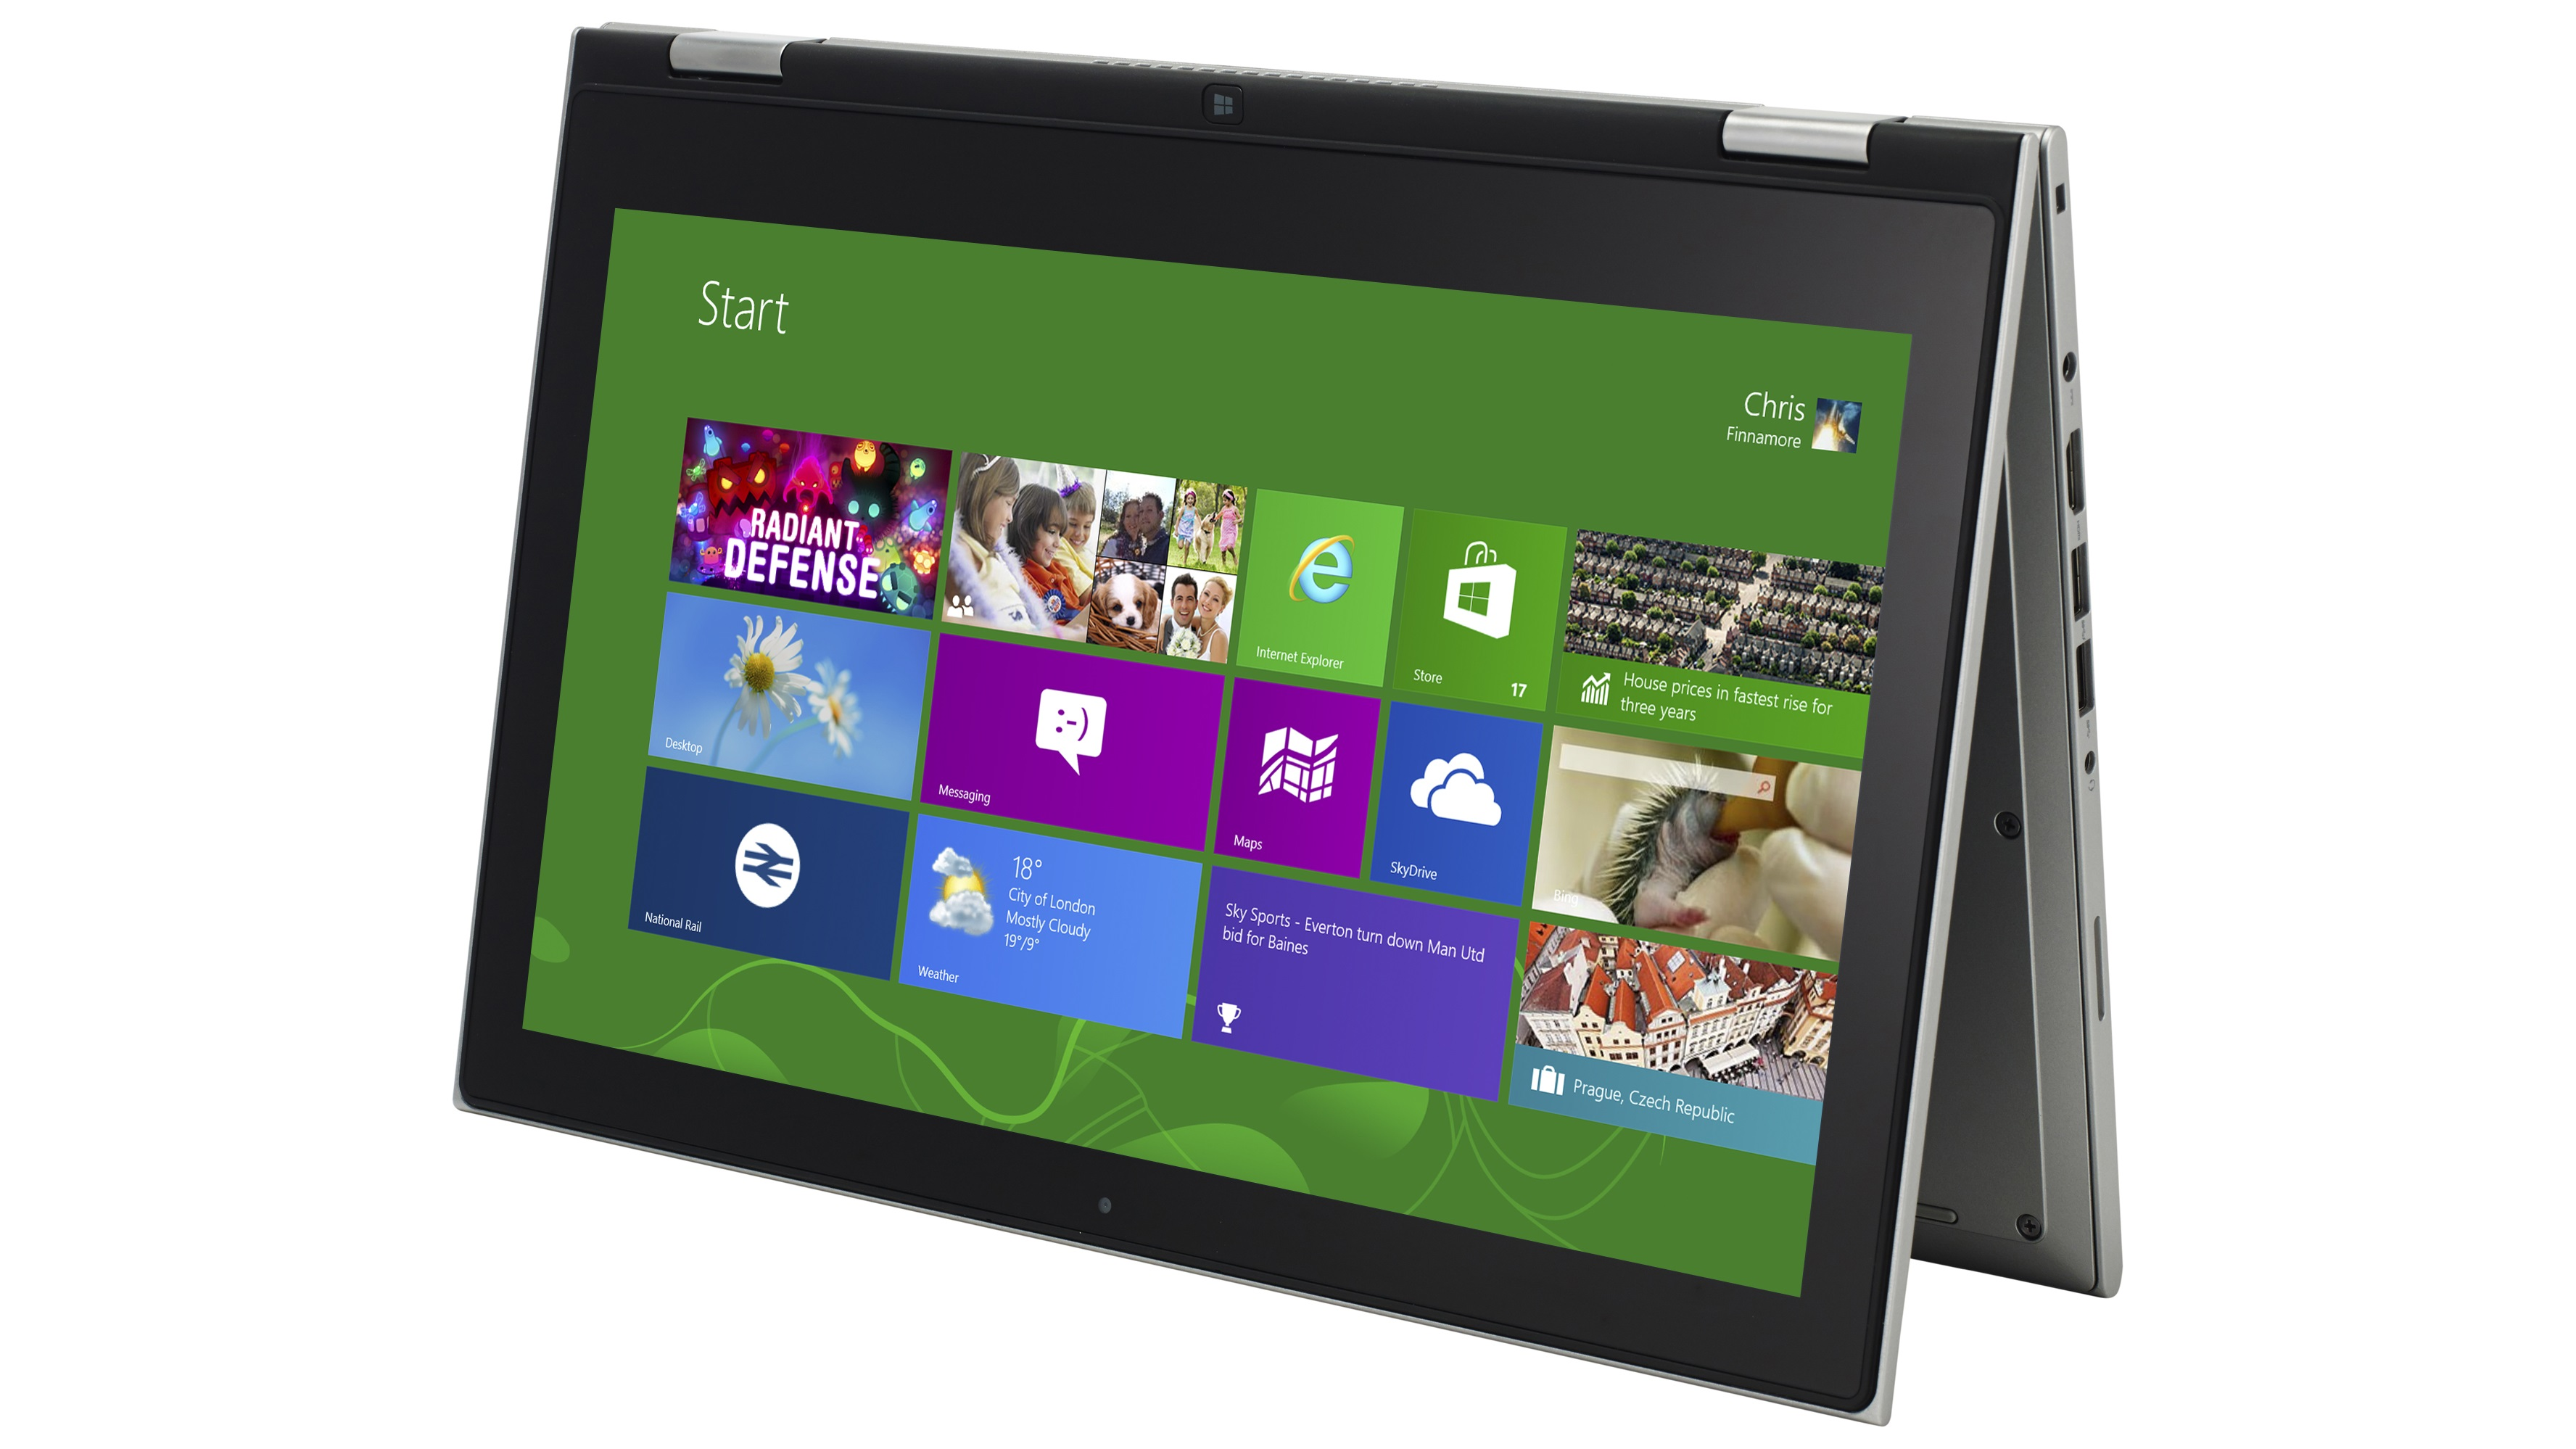 dell inspiron 13 7000 review expert reviews. Black Bedroom Furniture Sets. Home Design Ideas